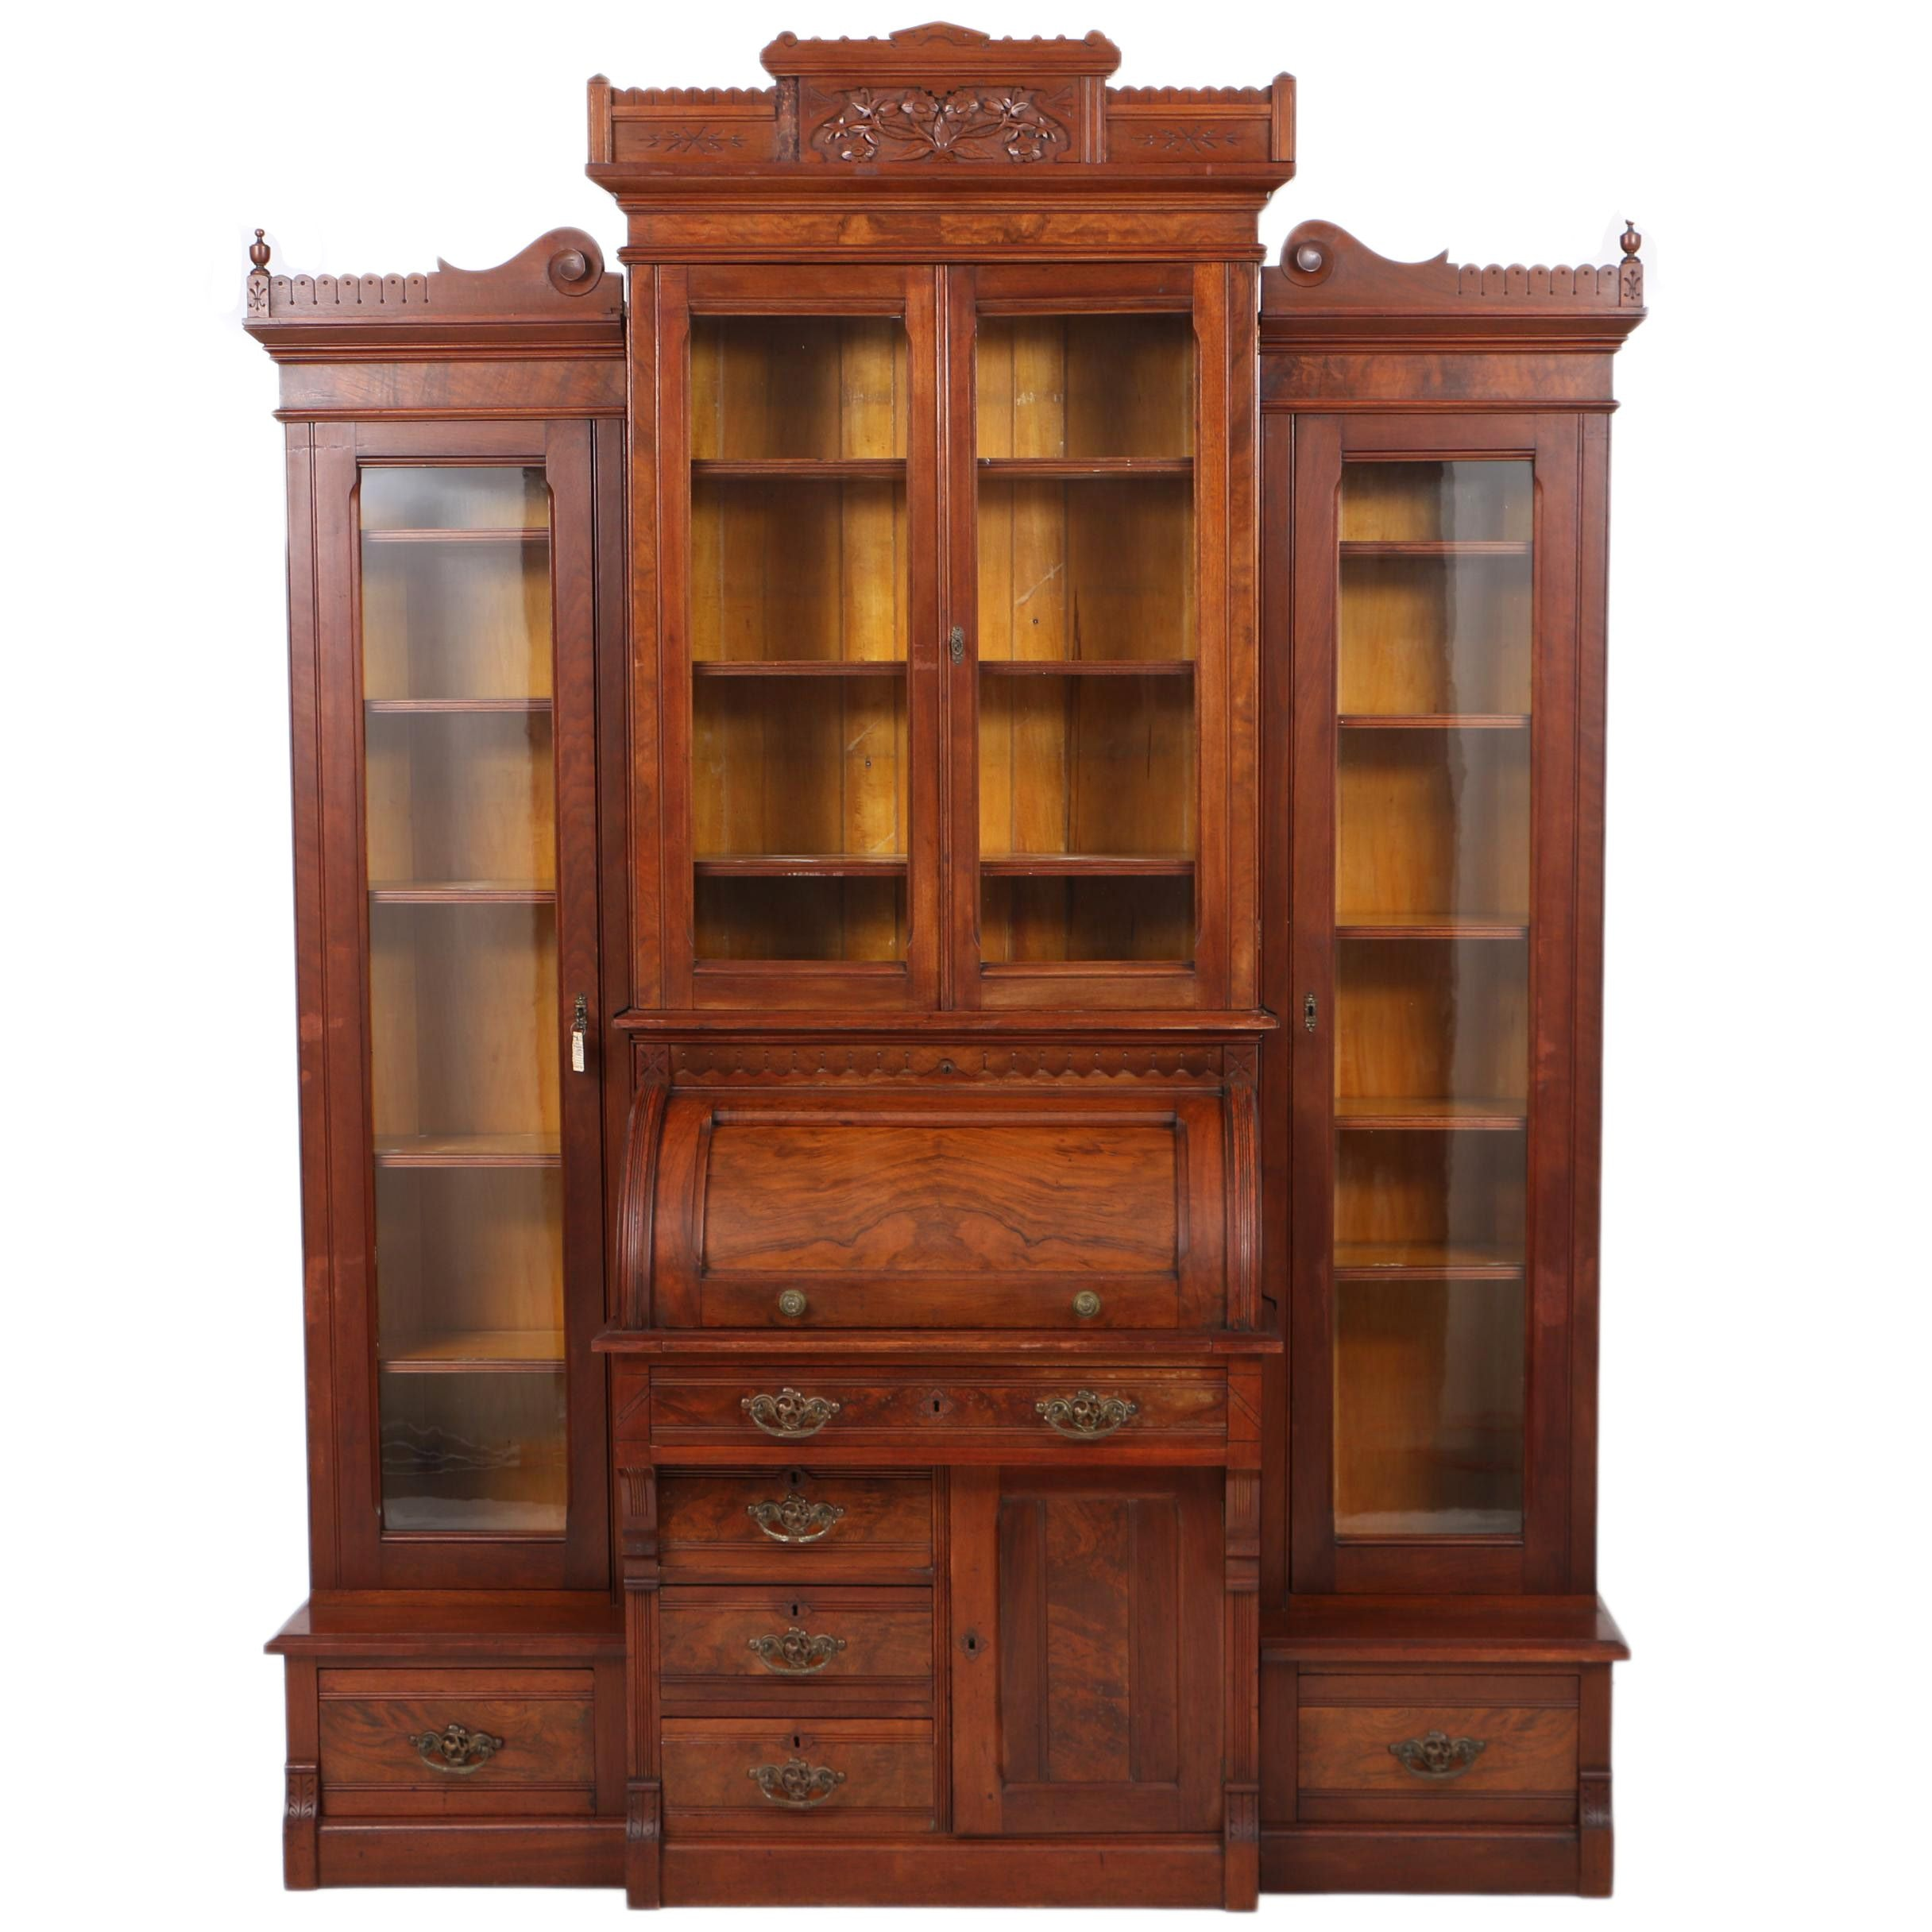 Antique Victorian Eastlake Cylinder Secretary with Bookcases, Late 19th Century